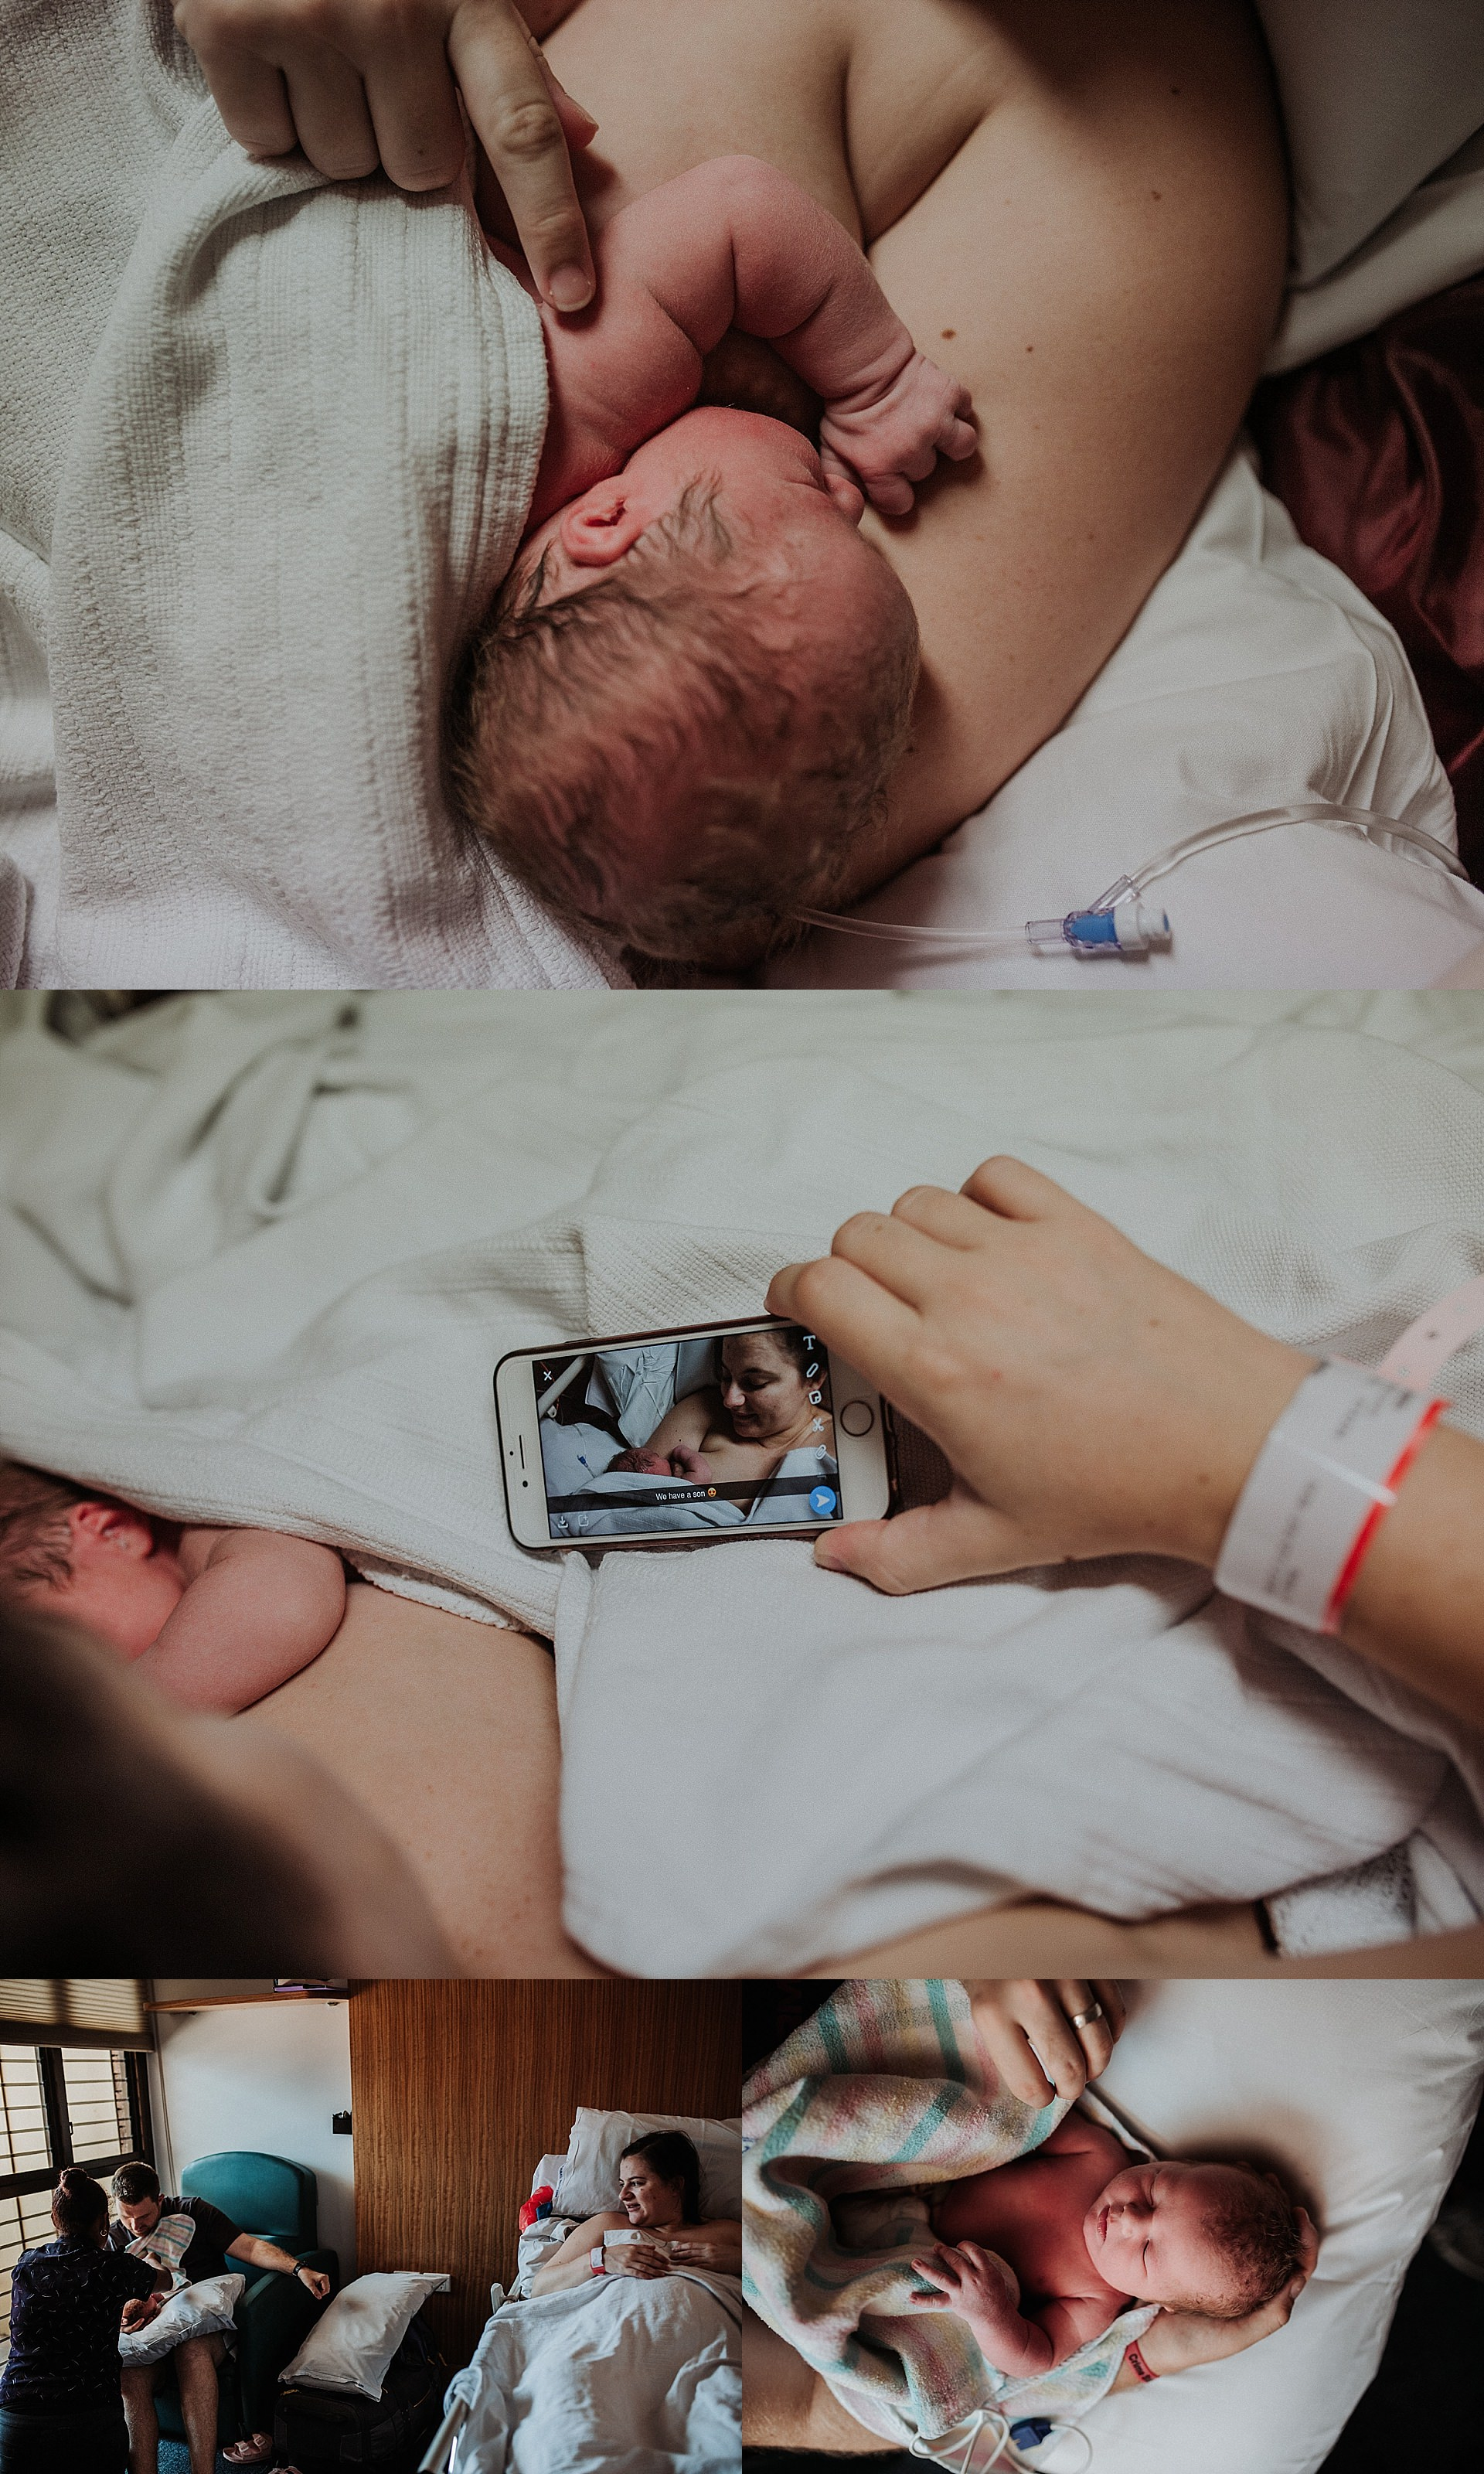 it's-a-boy-surprise-sex-birth-noewborn-baby-photography-in-hospital